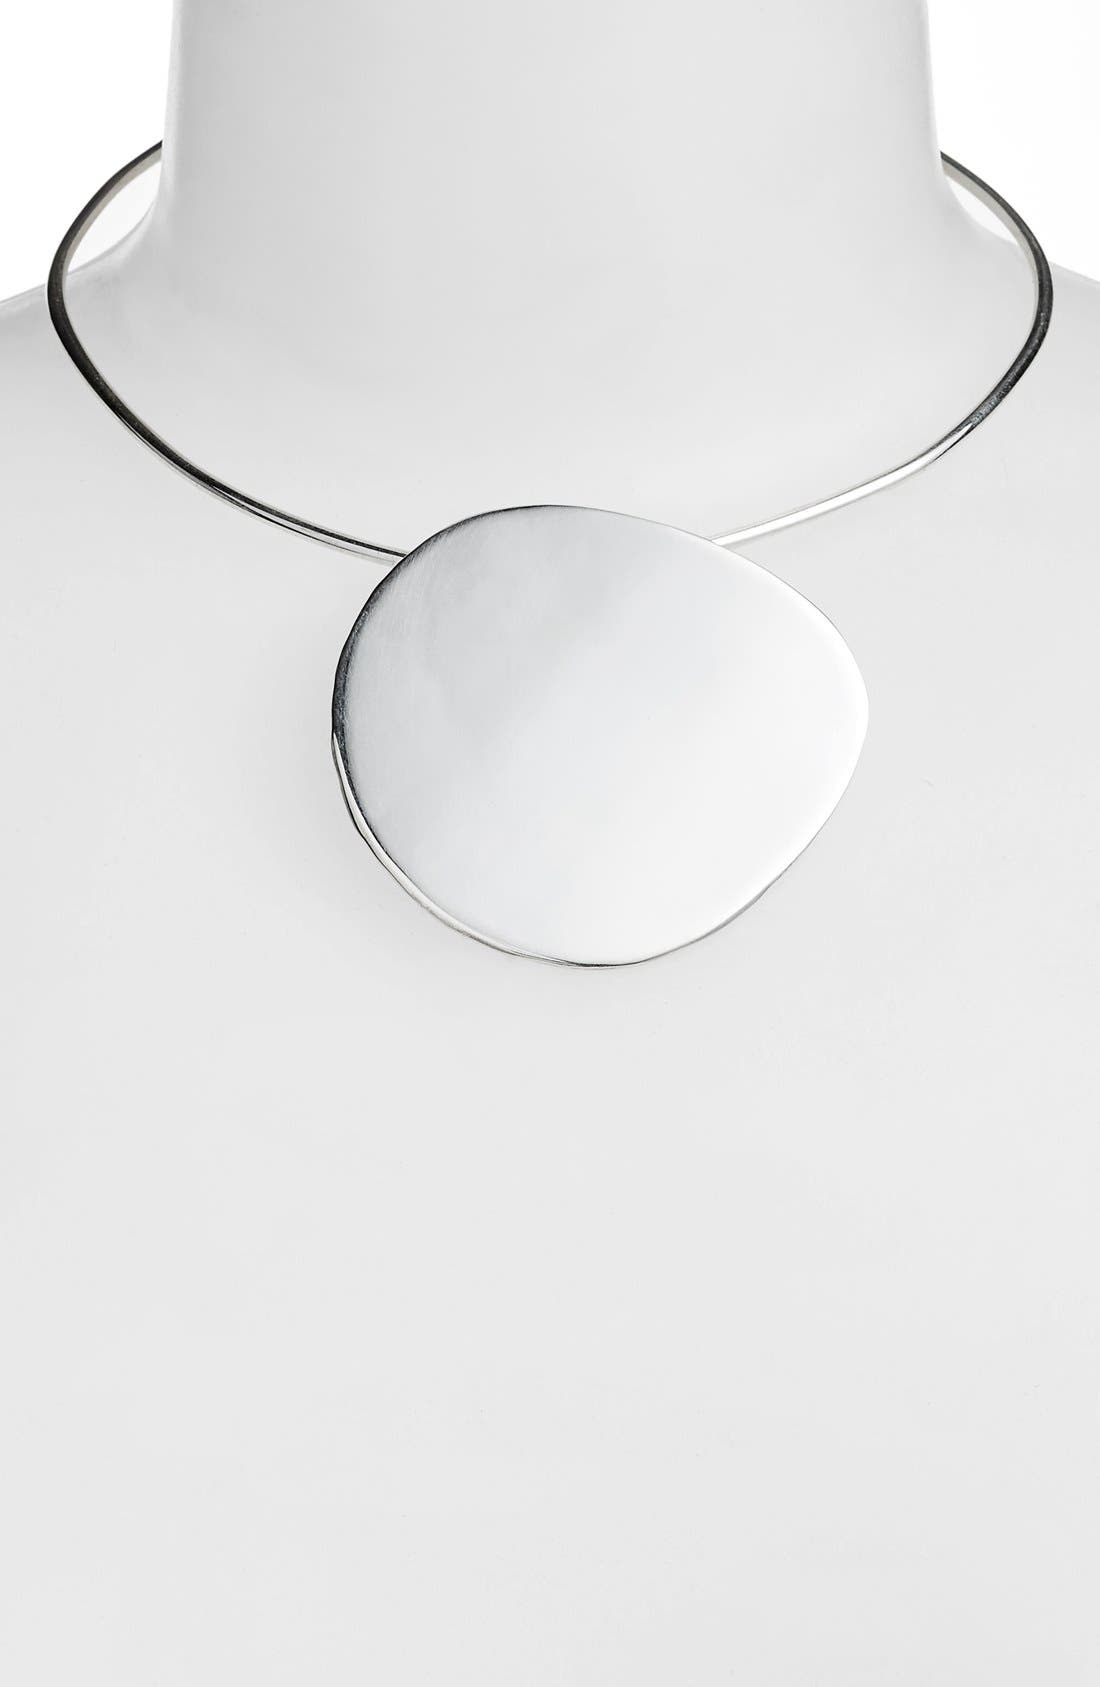 Pendo Collar Necklace,                             Alternate thumbnail 2, color,                             SILVER